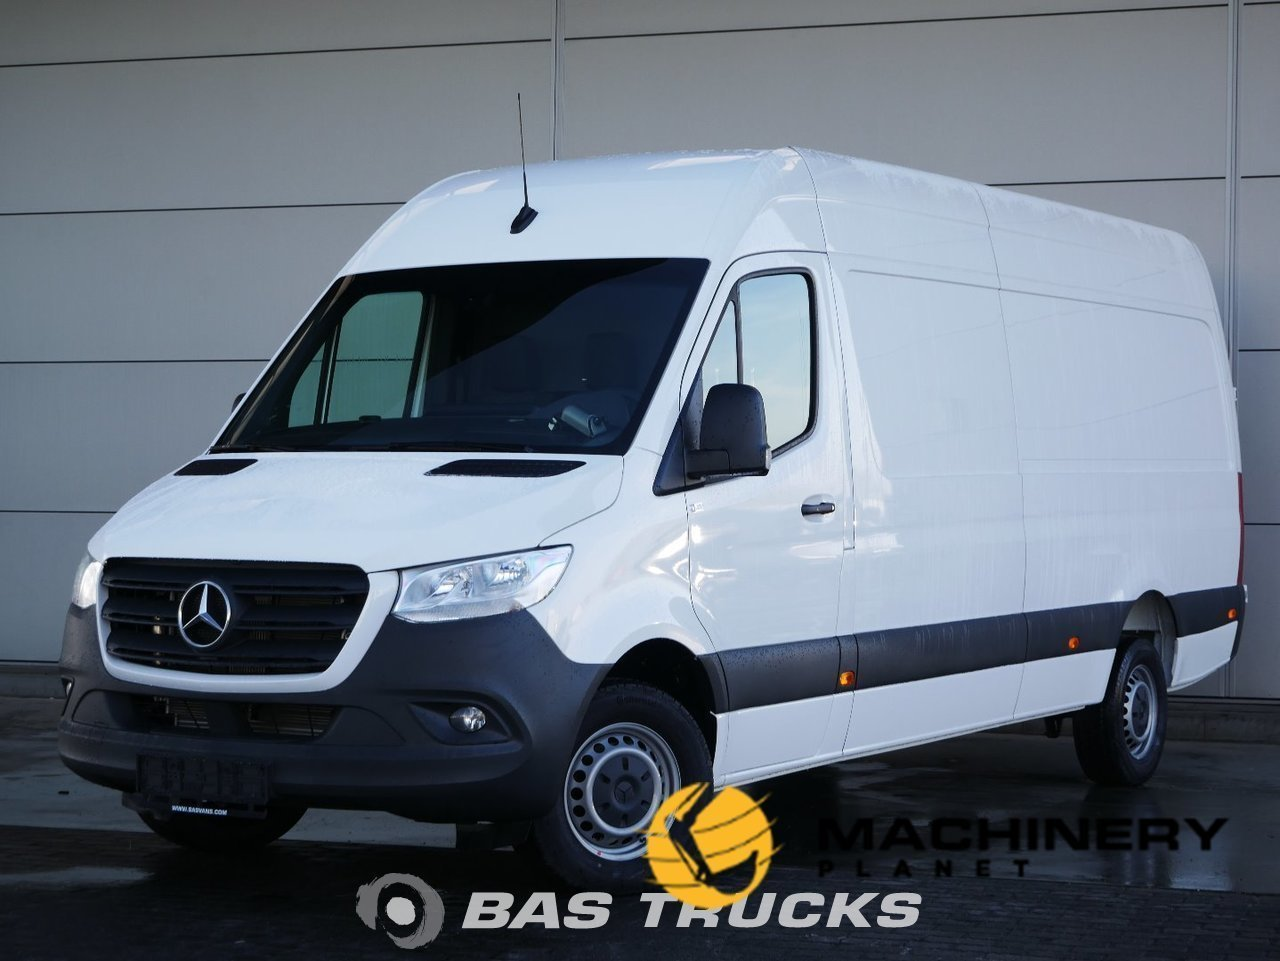 Used-Light-commercial-vehicle-Mercedes-Sprinter-2019_145323_1-1554198344196_5ca32f482fbd6-1.jpg